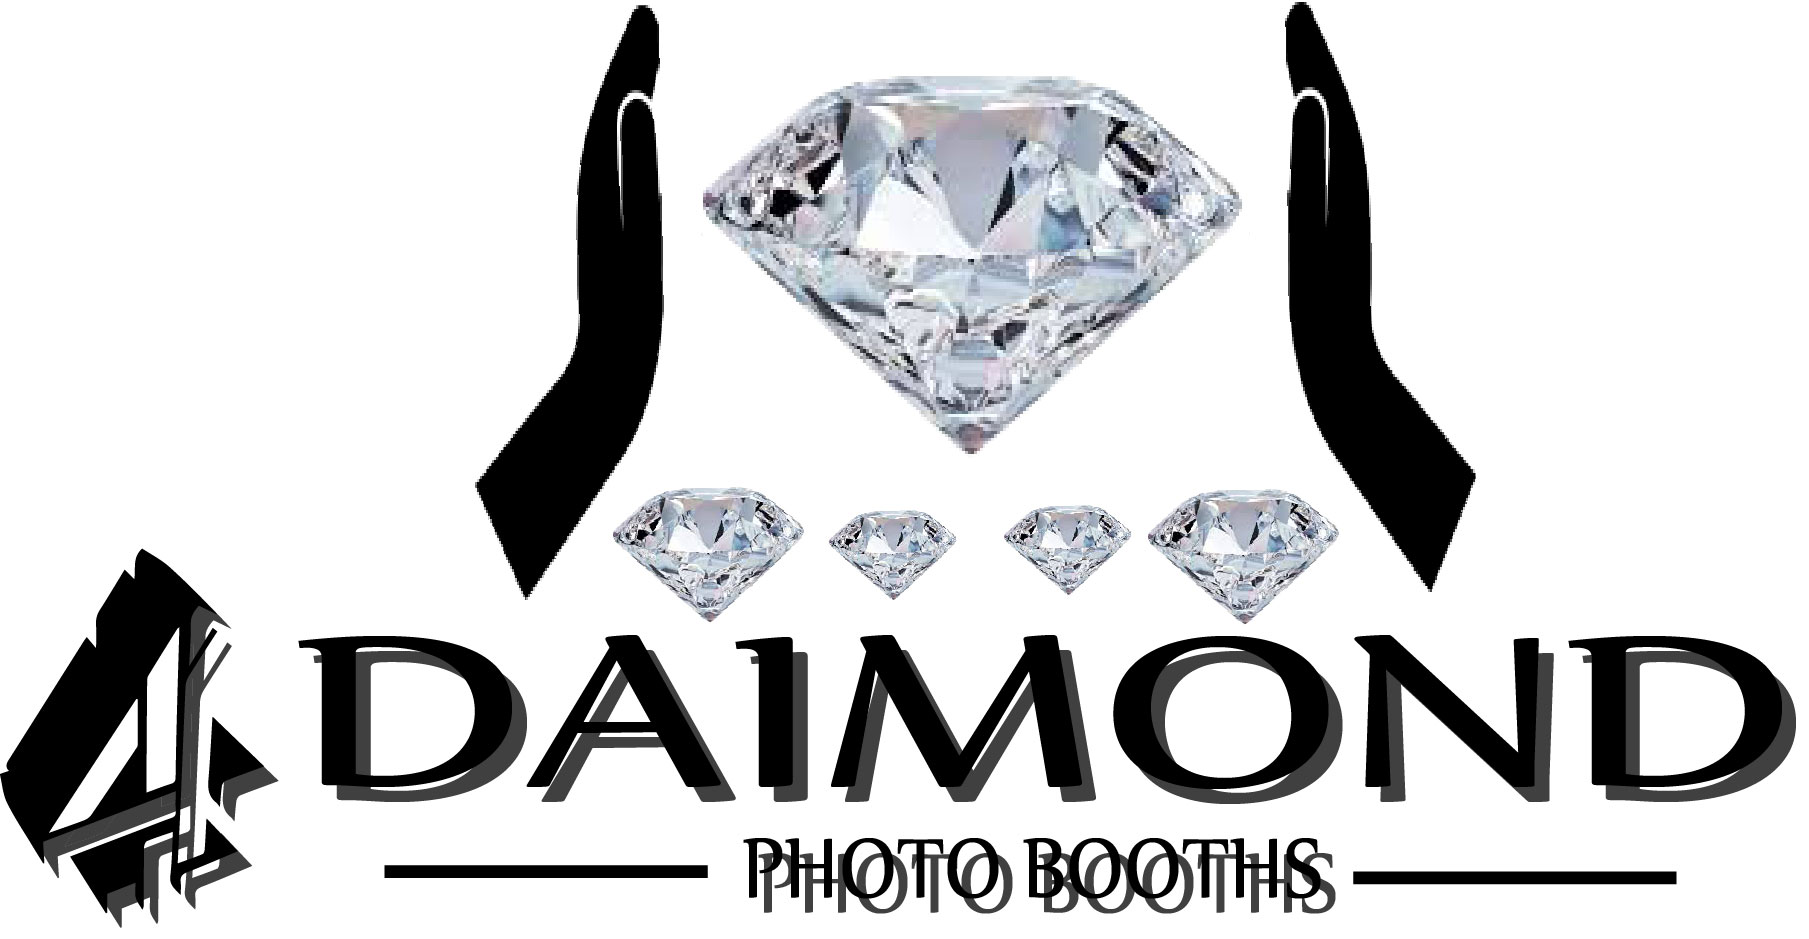 Logo Design by Business Ideas - Entry No. 29 in the Logo Design Contest Creative Logo Design for 4 Diamond Photo Booths.